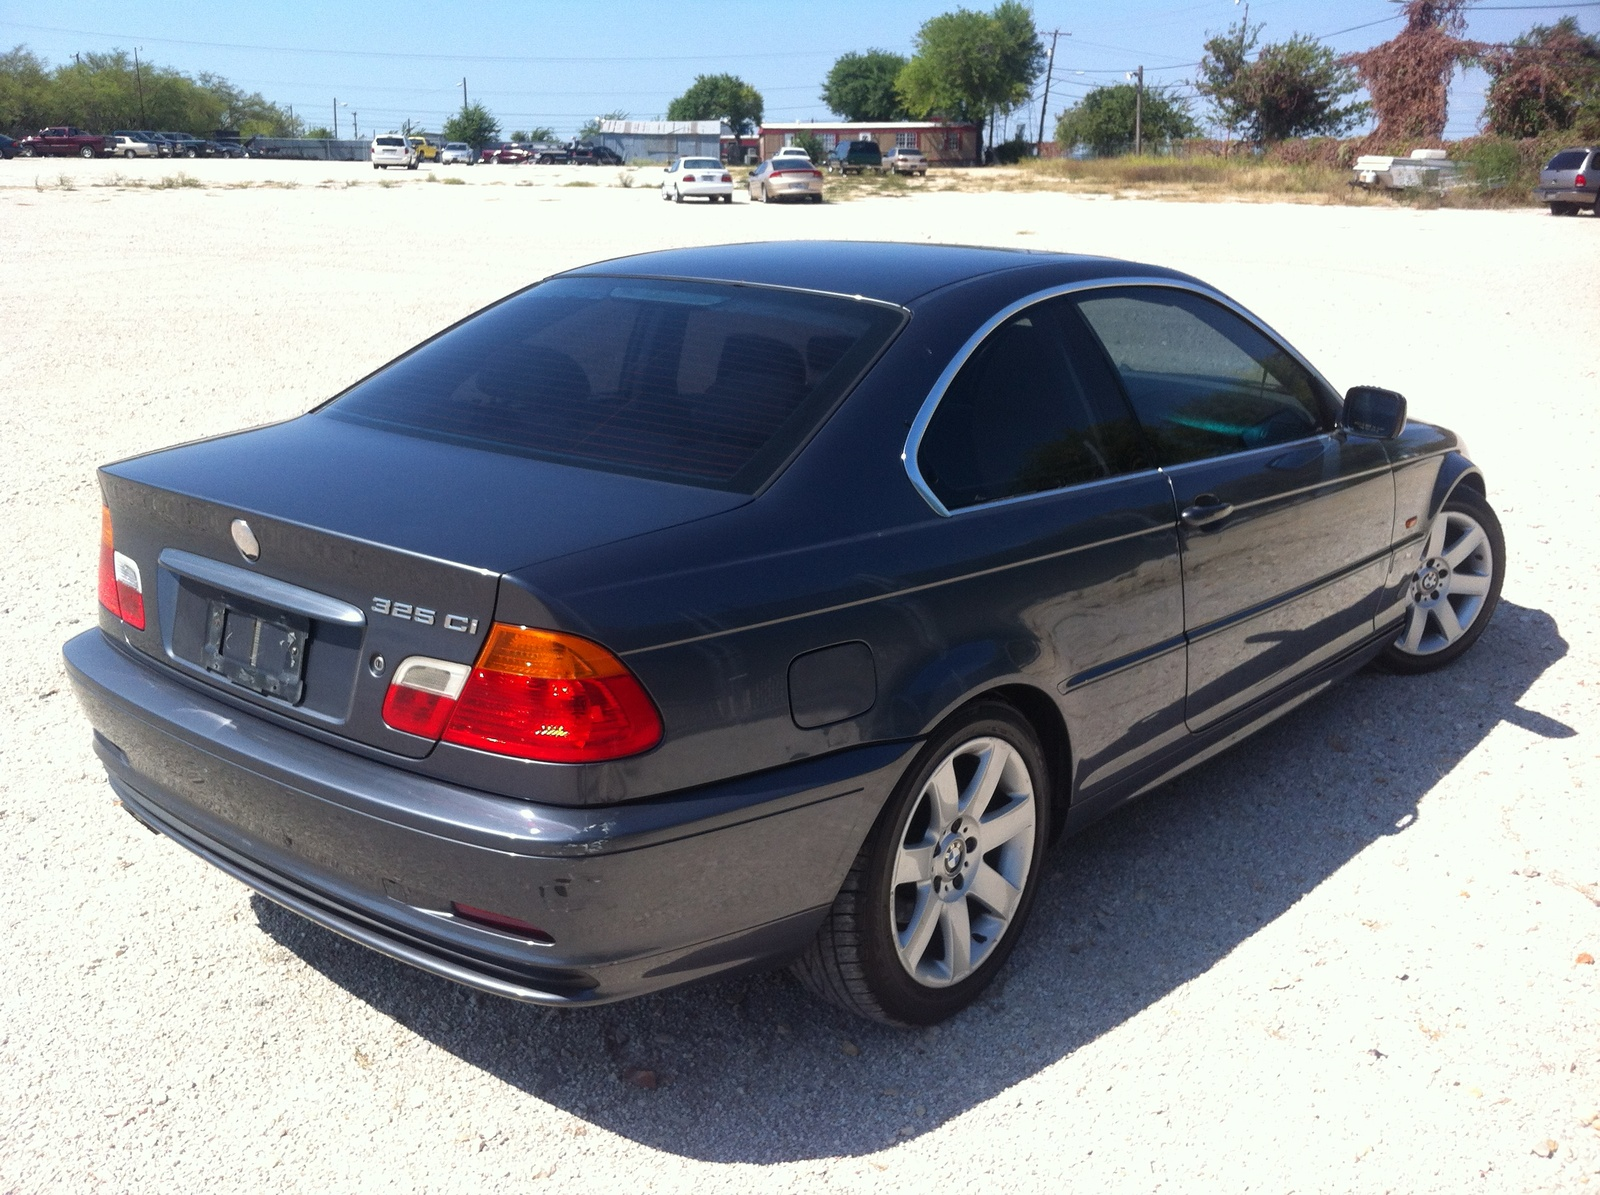 BMW 3 series 330xi 2001 photo - 10